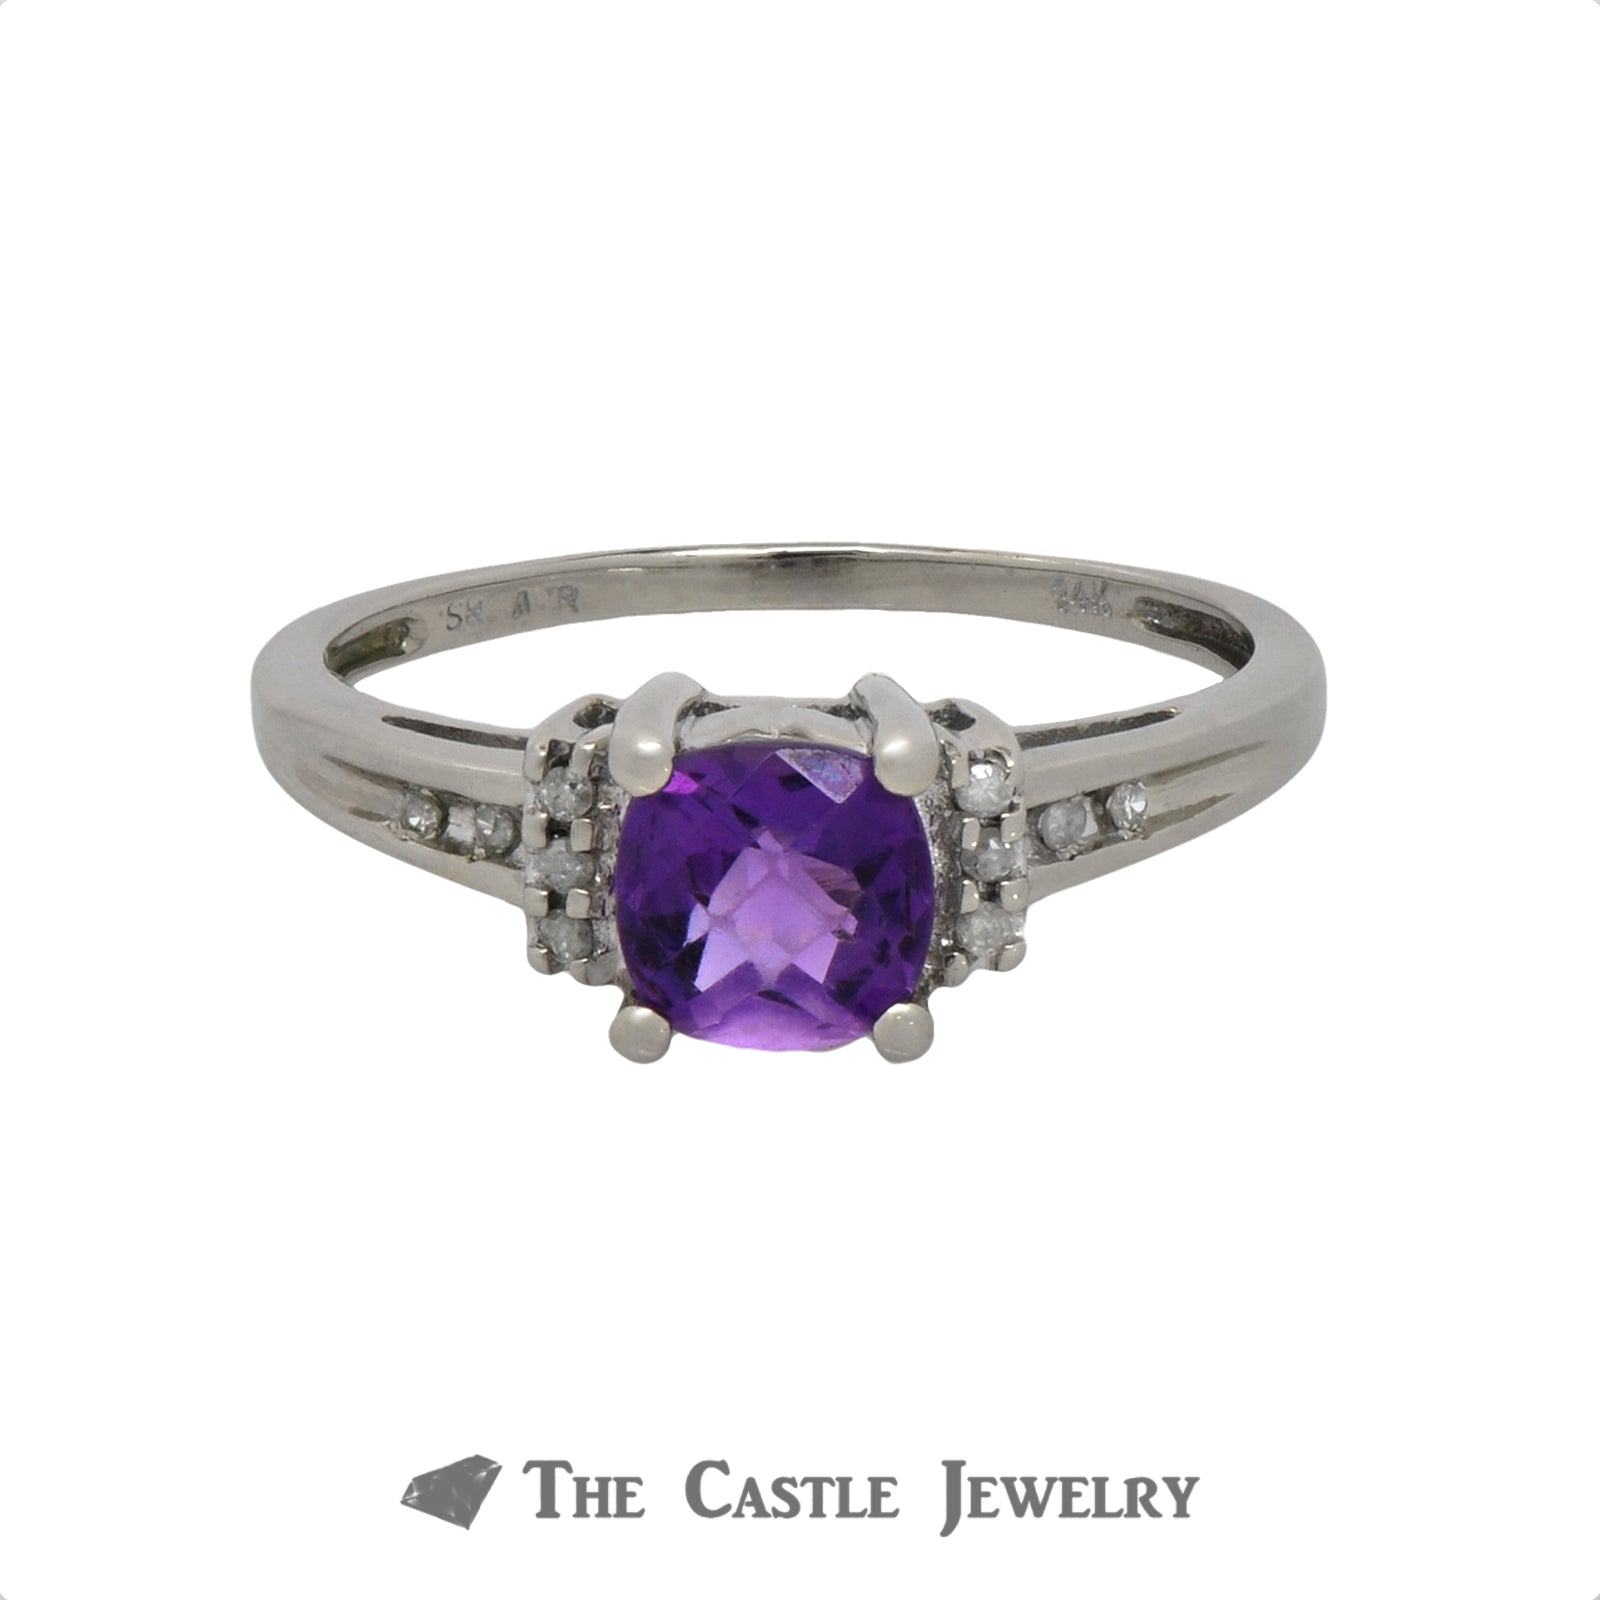 Fantasy Cut Amethyst Ring with Diamond Accents in 10K White Gold